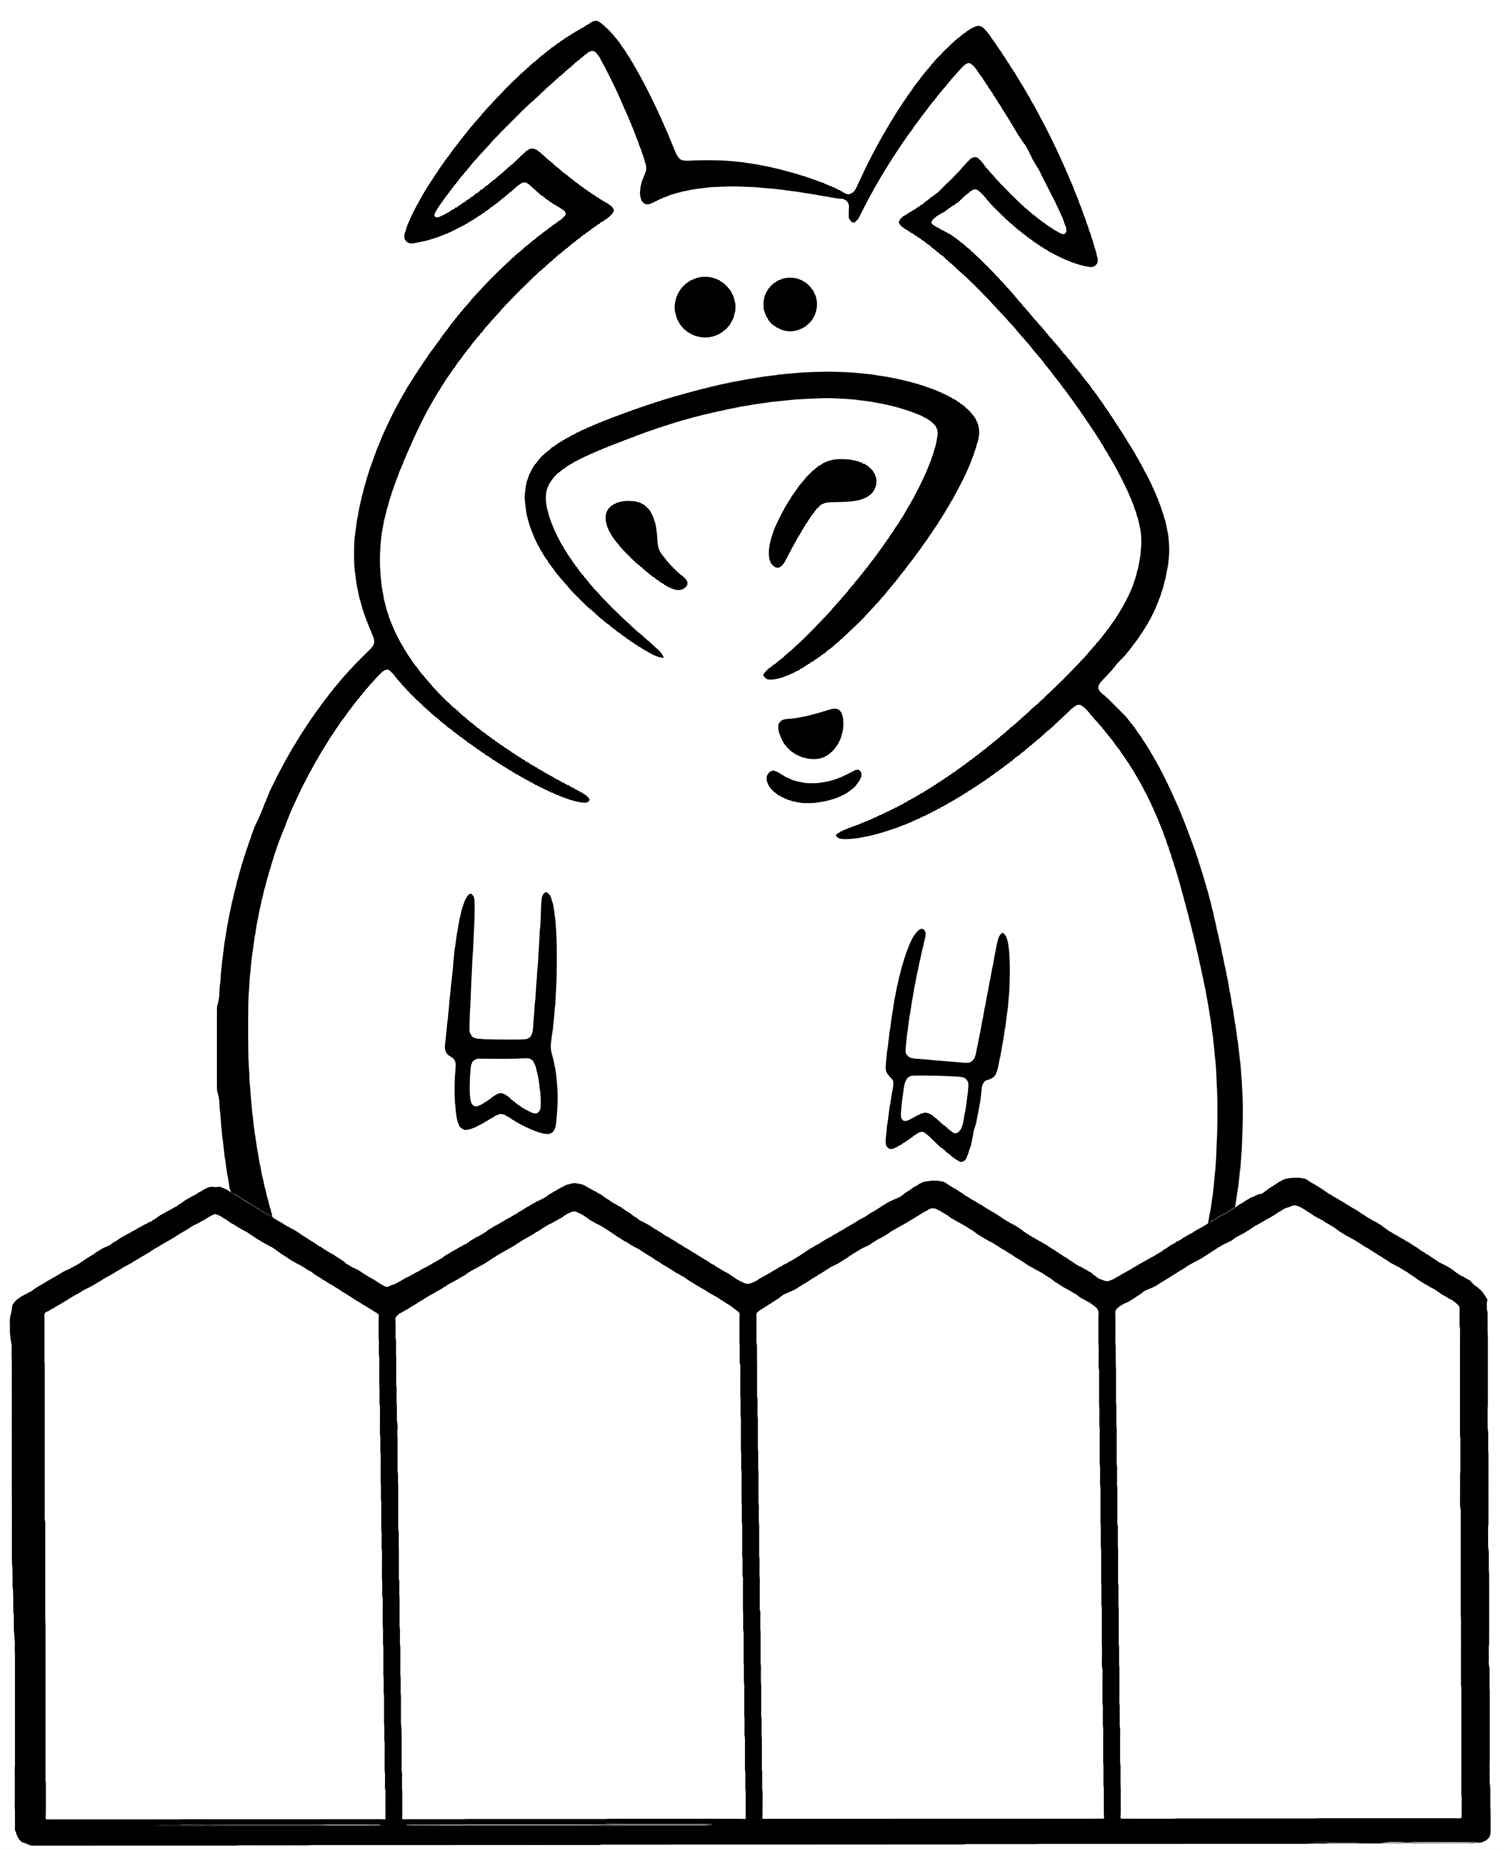 Confused Pig Behind The Fence Coloring Sheet